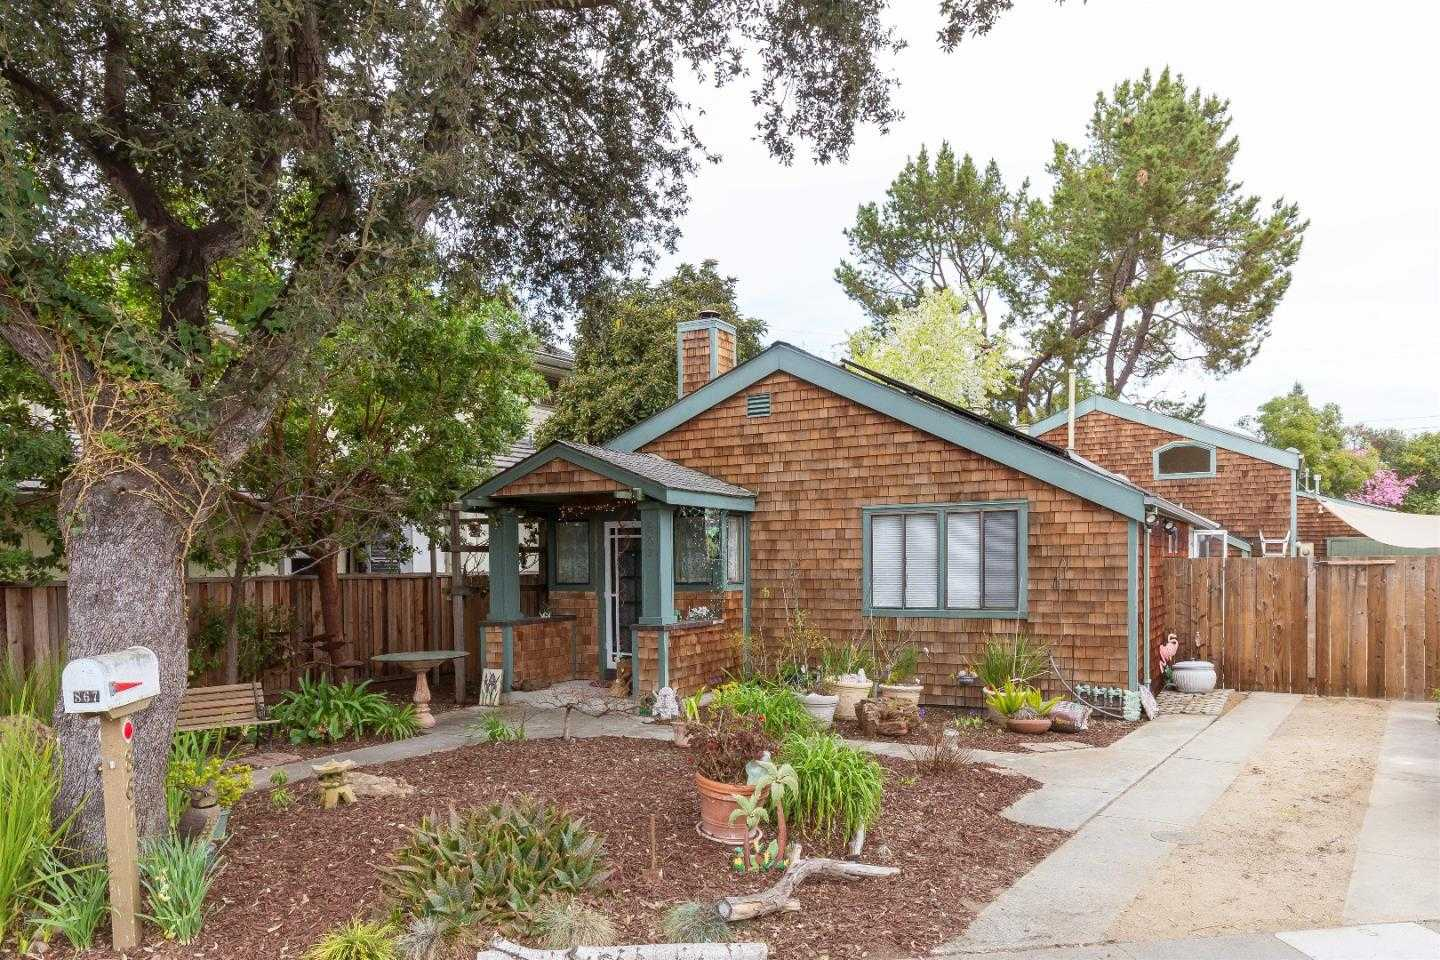 $1,999,888 - 3Br/2Ba -  for Sale in Palo Alto